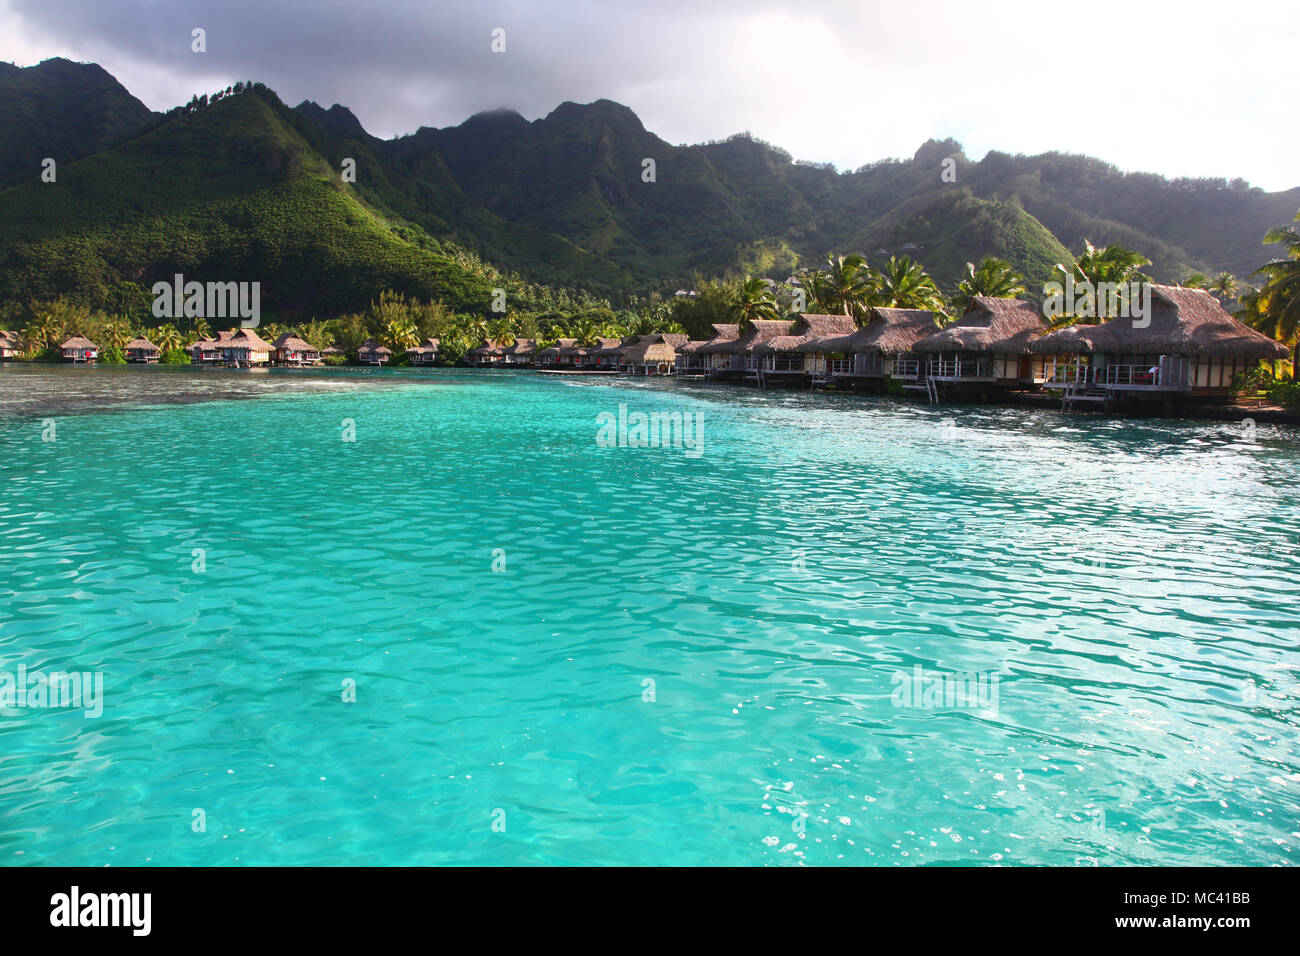 View towards the a bay in Moorea, with turquoise tropical water & bungalows over the sea. French Polynesia, South Pacific. - Stock Image